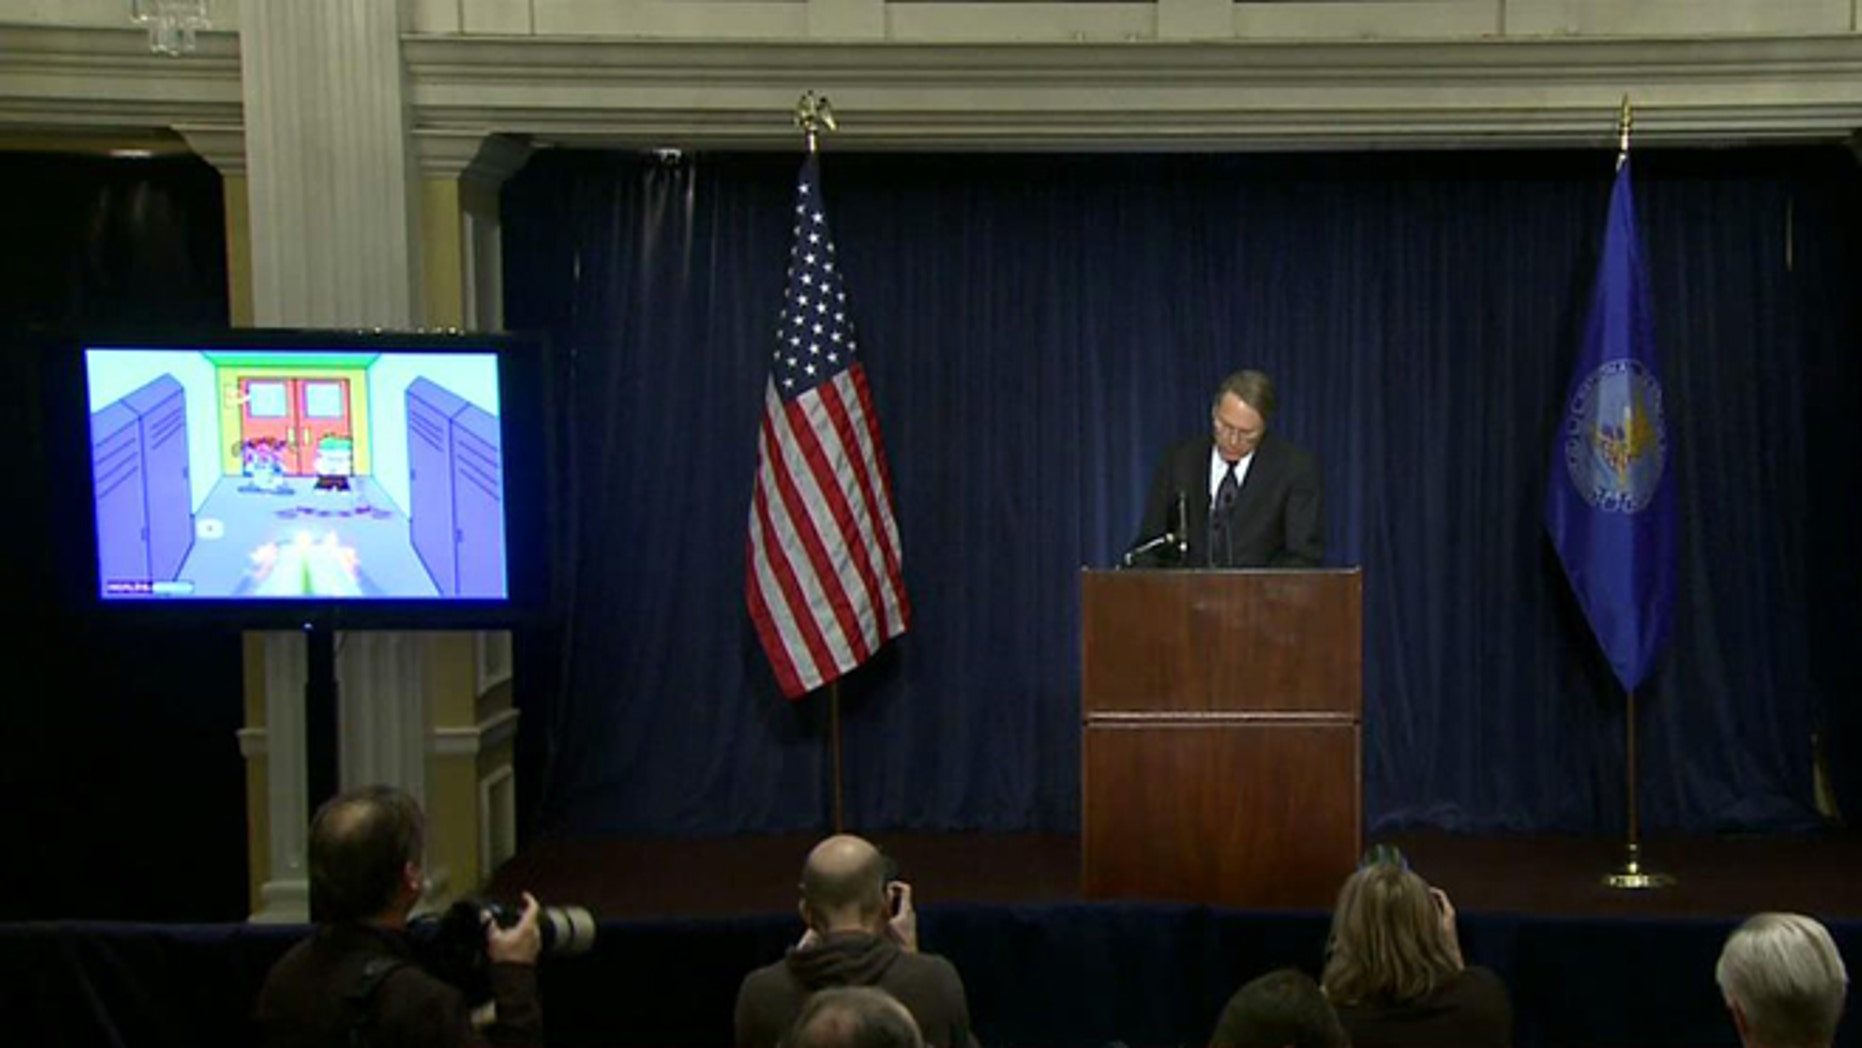 """Dec. 22, 2012: Citing violent video games such as """"Kindergarten Killers,"""" seen on a screen over his shoulder, NRA chief Wayne LaPierre addresses the nation following a massacre in Connecticut."""